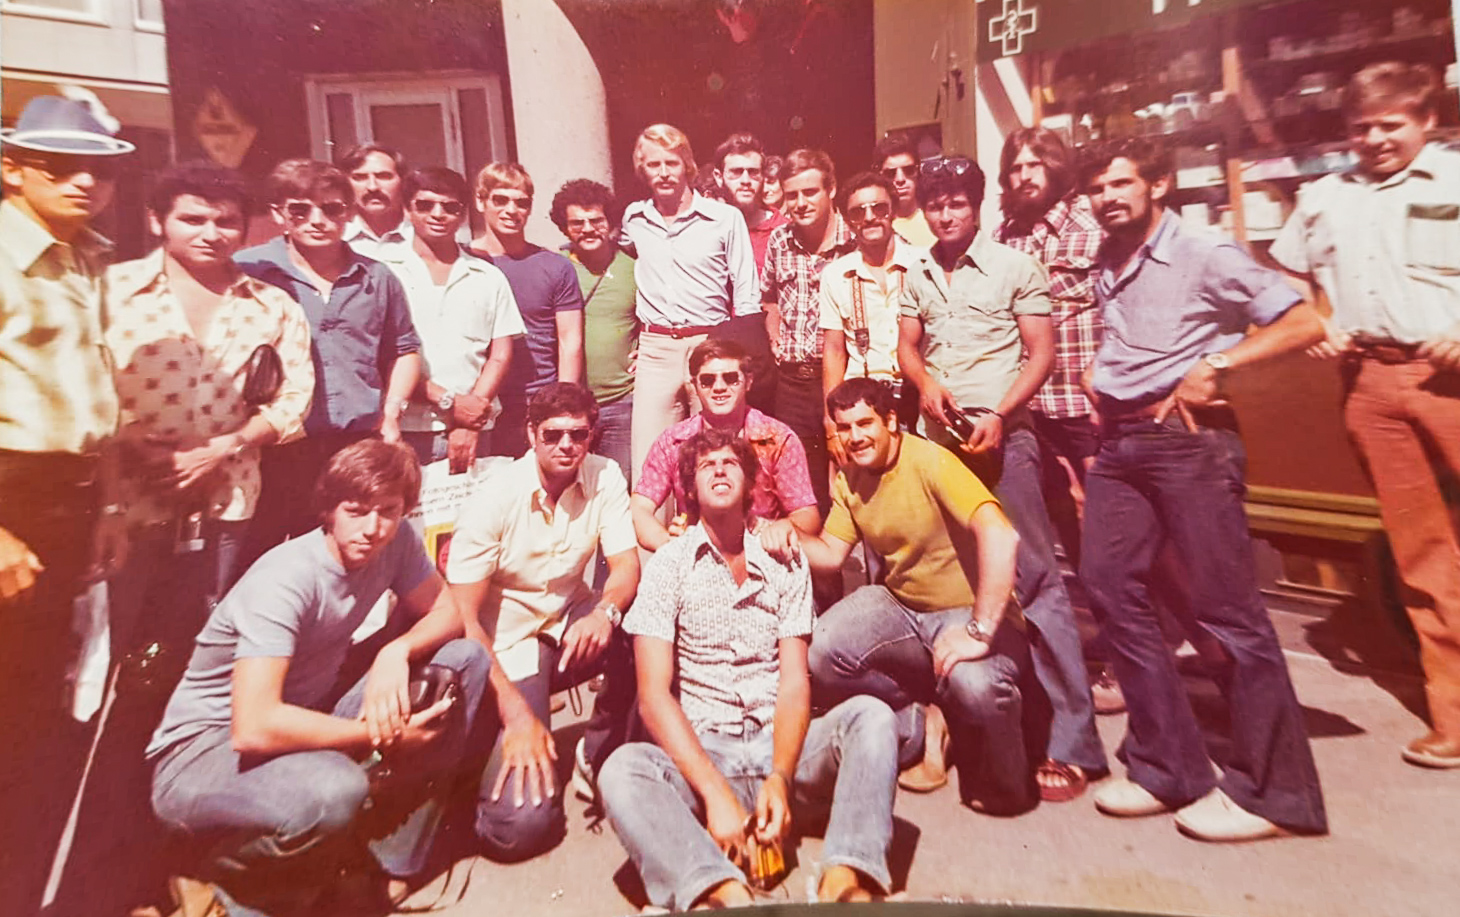 Julio Friedman, together with other Israelis held in captivity, are hosted by the Jewish community in Switzerland. 1976 (Julio is standing in the back, on the left side of the picture, sporting an impressive mustache)